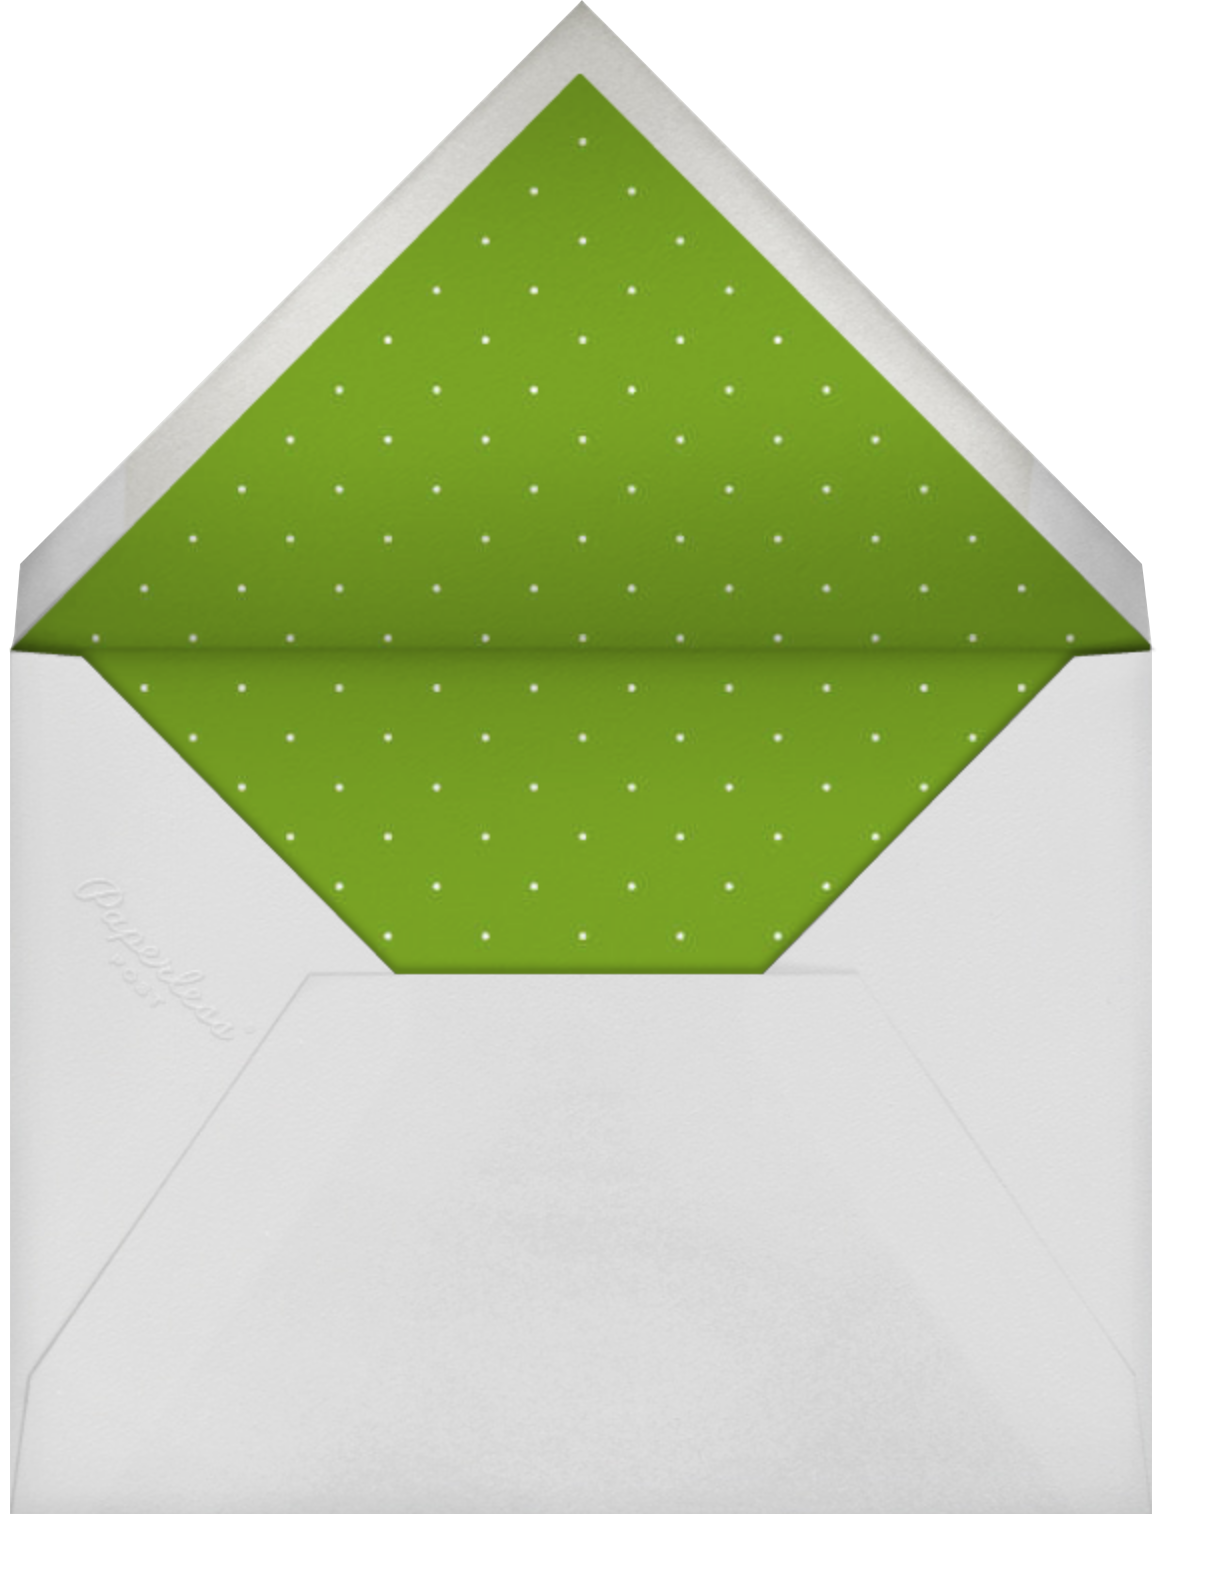 Ra Ra Christmas - Lipstick - Mr. Boddington's Studio - null - envelope back